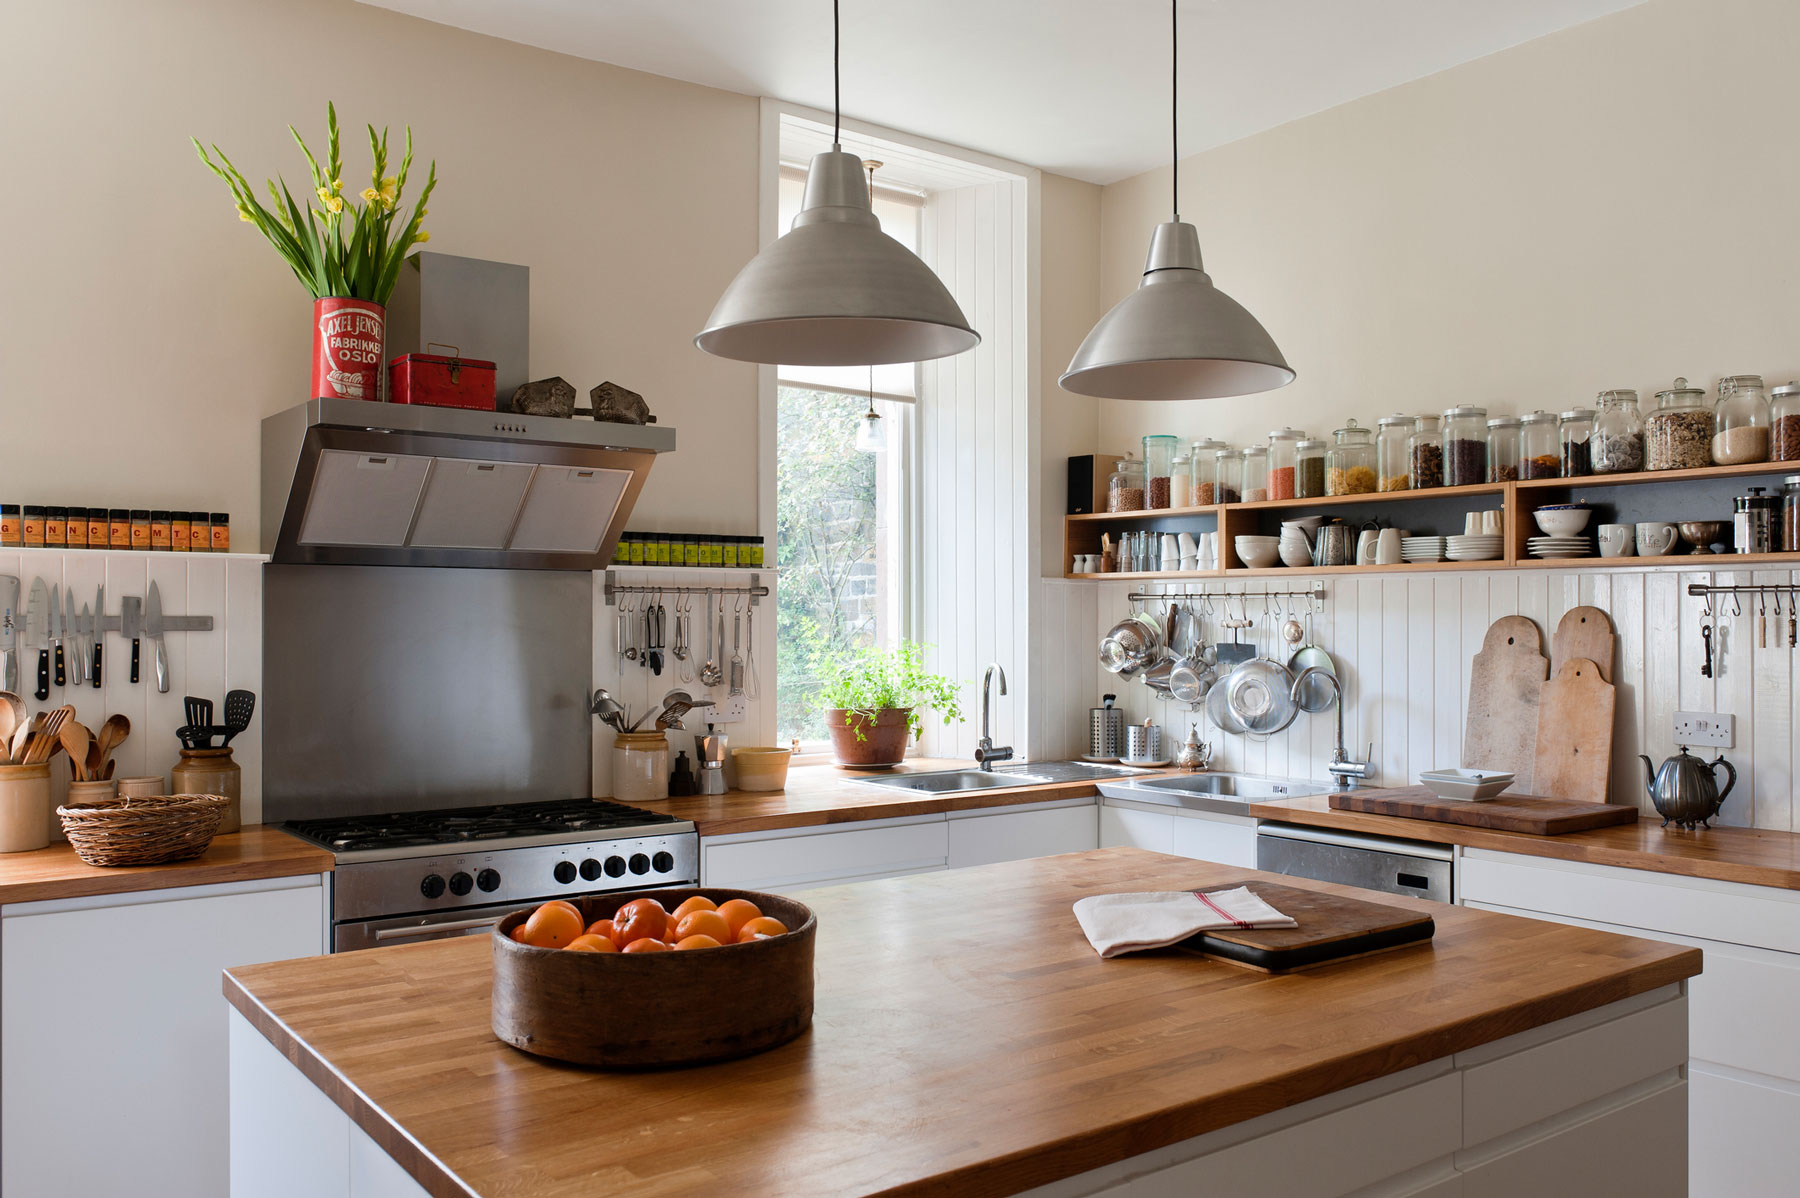 Butcher Block Countertop Or Wood Countertops What To Know Real Simple